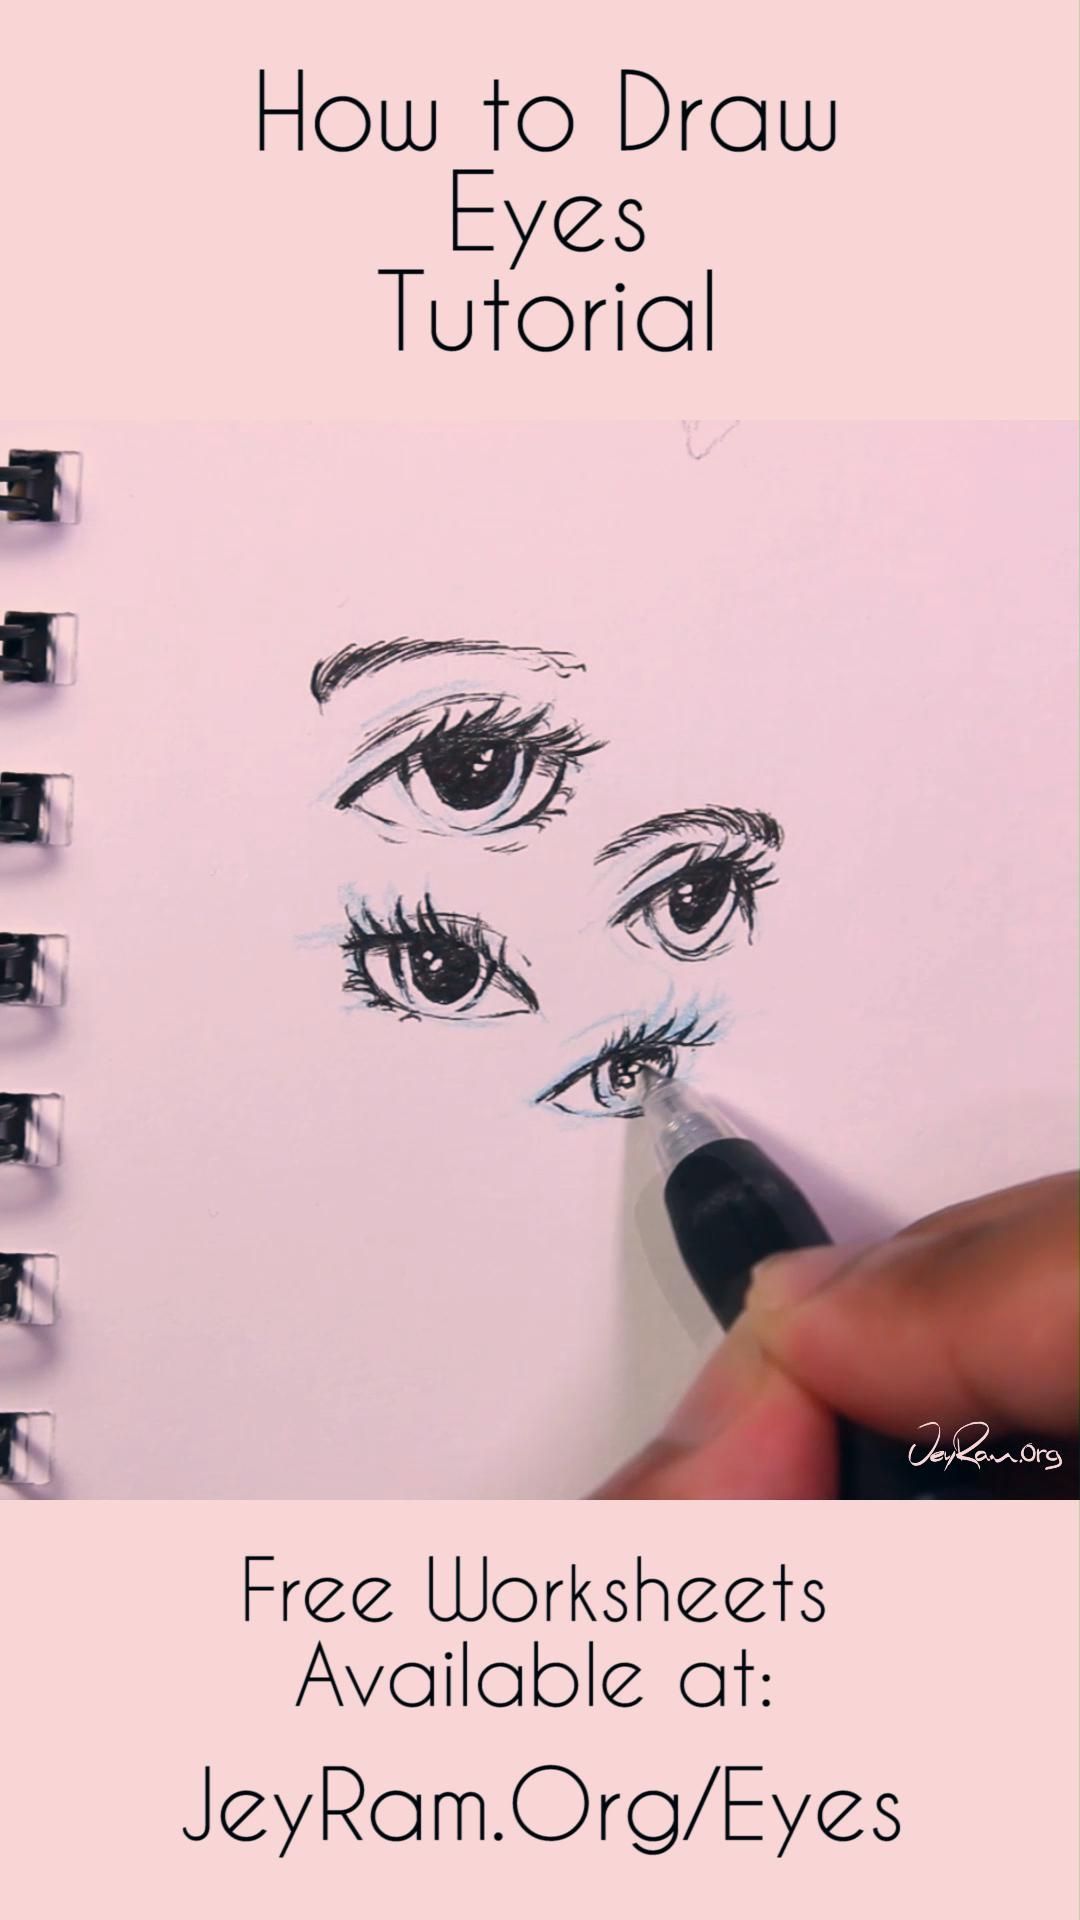 Learn how to draw the eyes using this step by step process made for beginners. Grab the free worksheets on the website and learn how to draw the simple eyes by developing the basic shapes of the eyes and then adding complexity. Drawing human anatomy is immensely satisfying and these free worksheets will help you make quick progress! #tutorial #drawing #draw #howtodraw #anatomy #illustration #art #artist